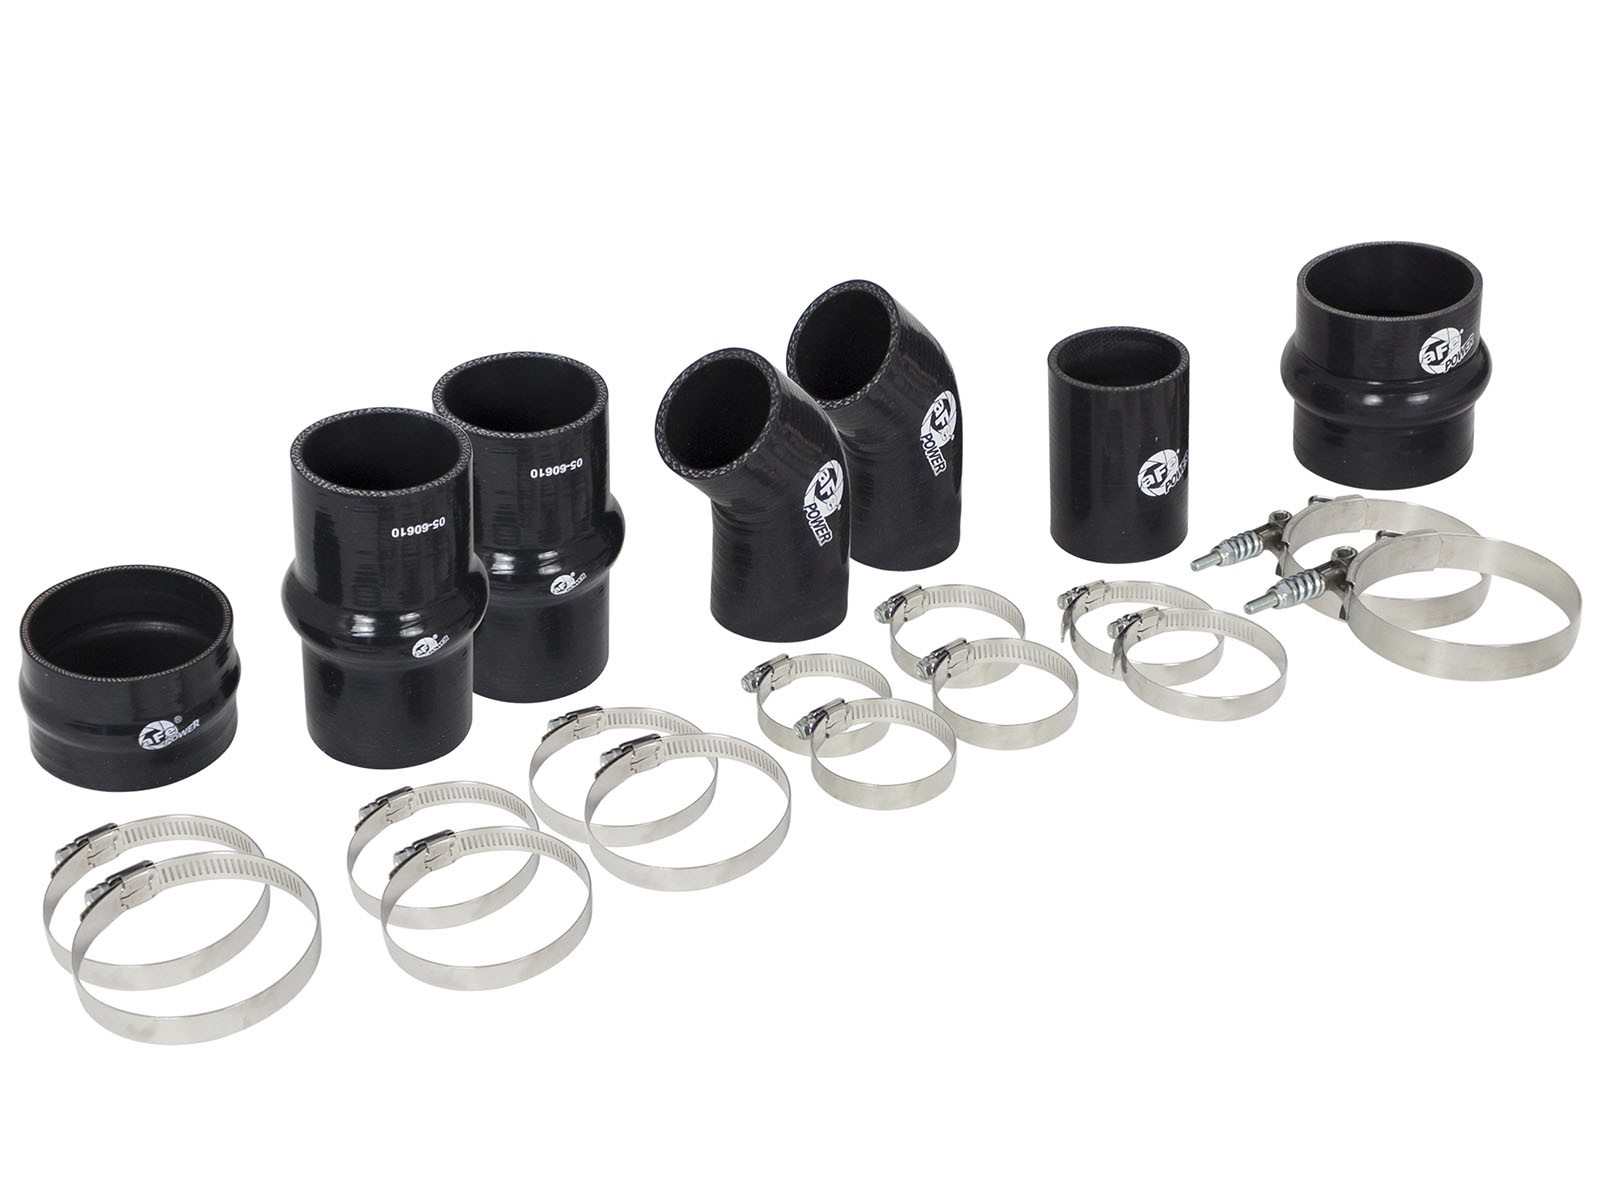 aFe POWER 46-20120A BladeRunner Intercooler Couplings & Clamps Kit; aFe Tubes Only